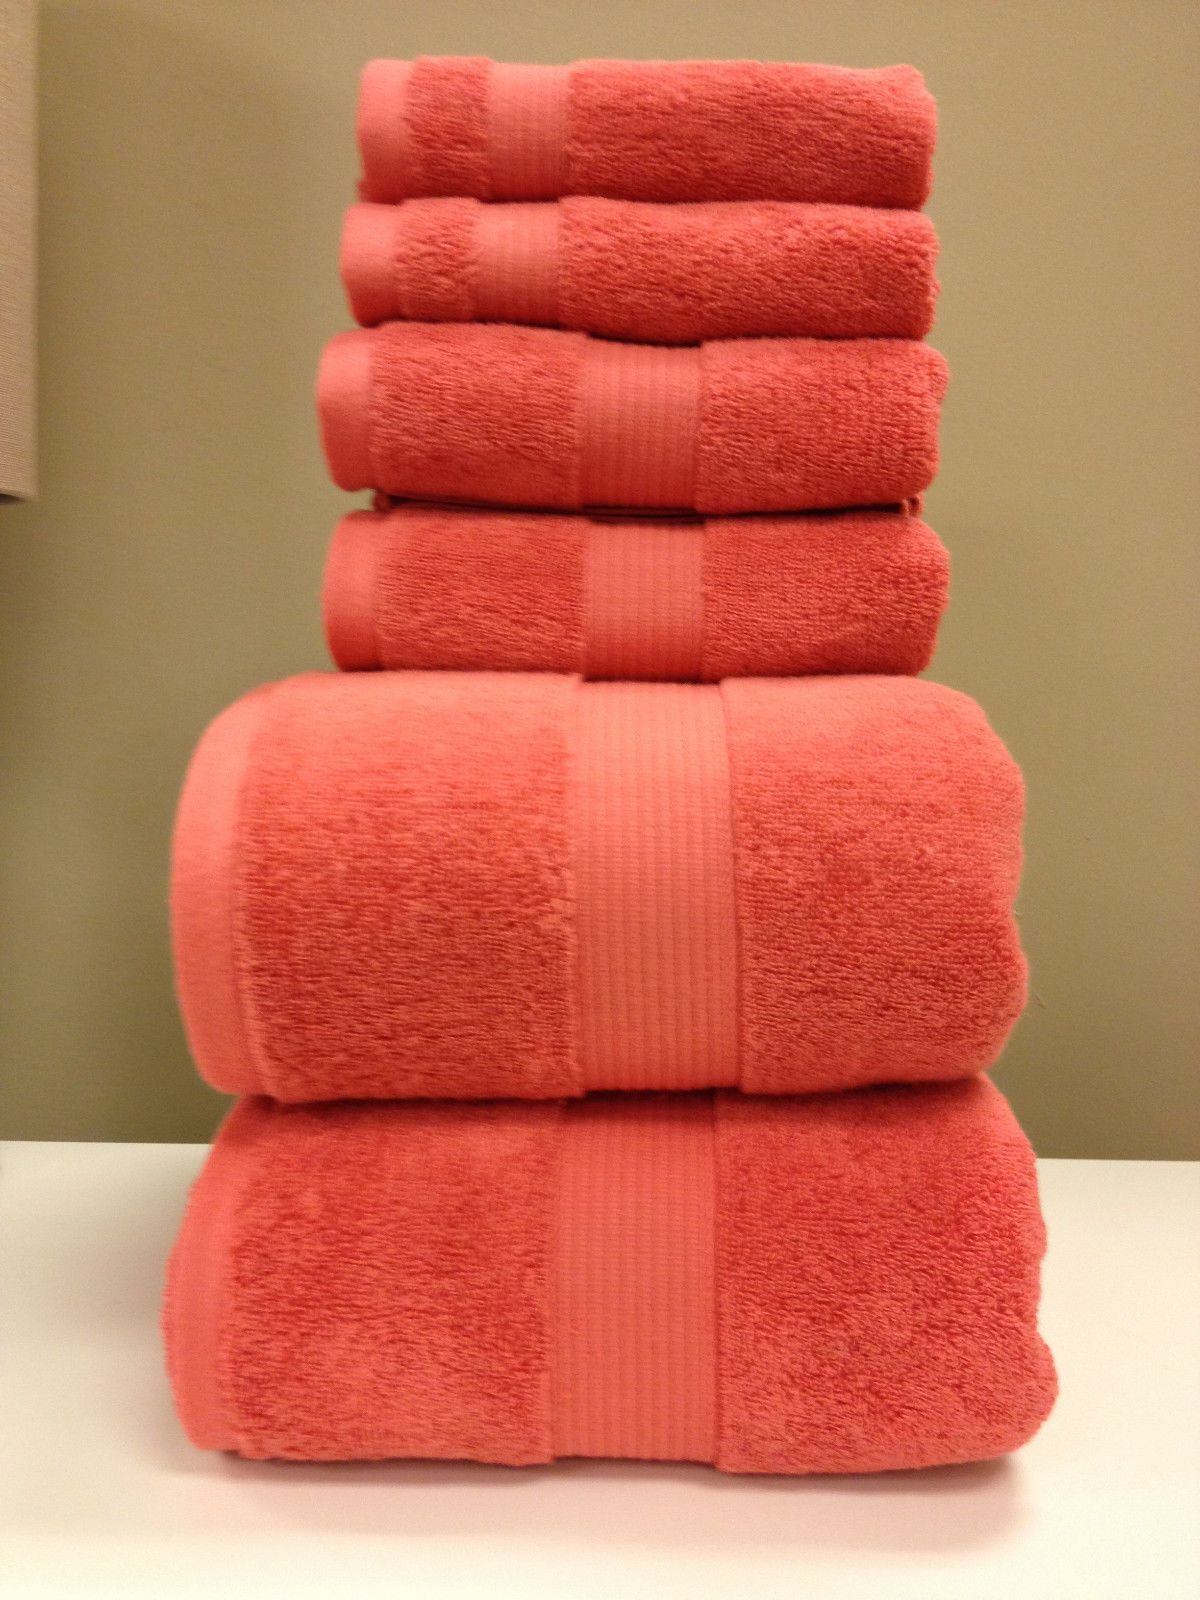 Coral Towels Also Walmart With Images Washing Clothes Towel